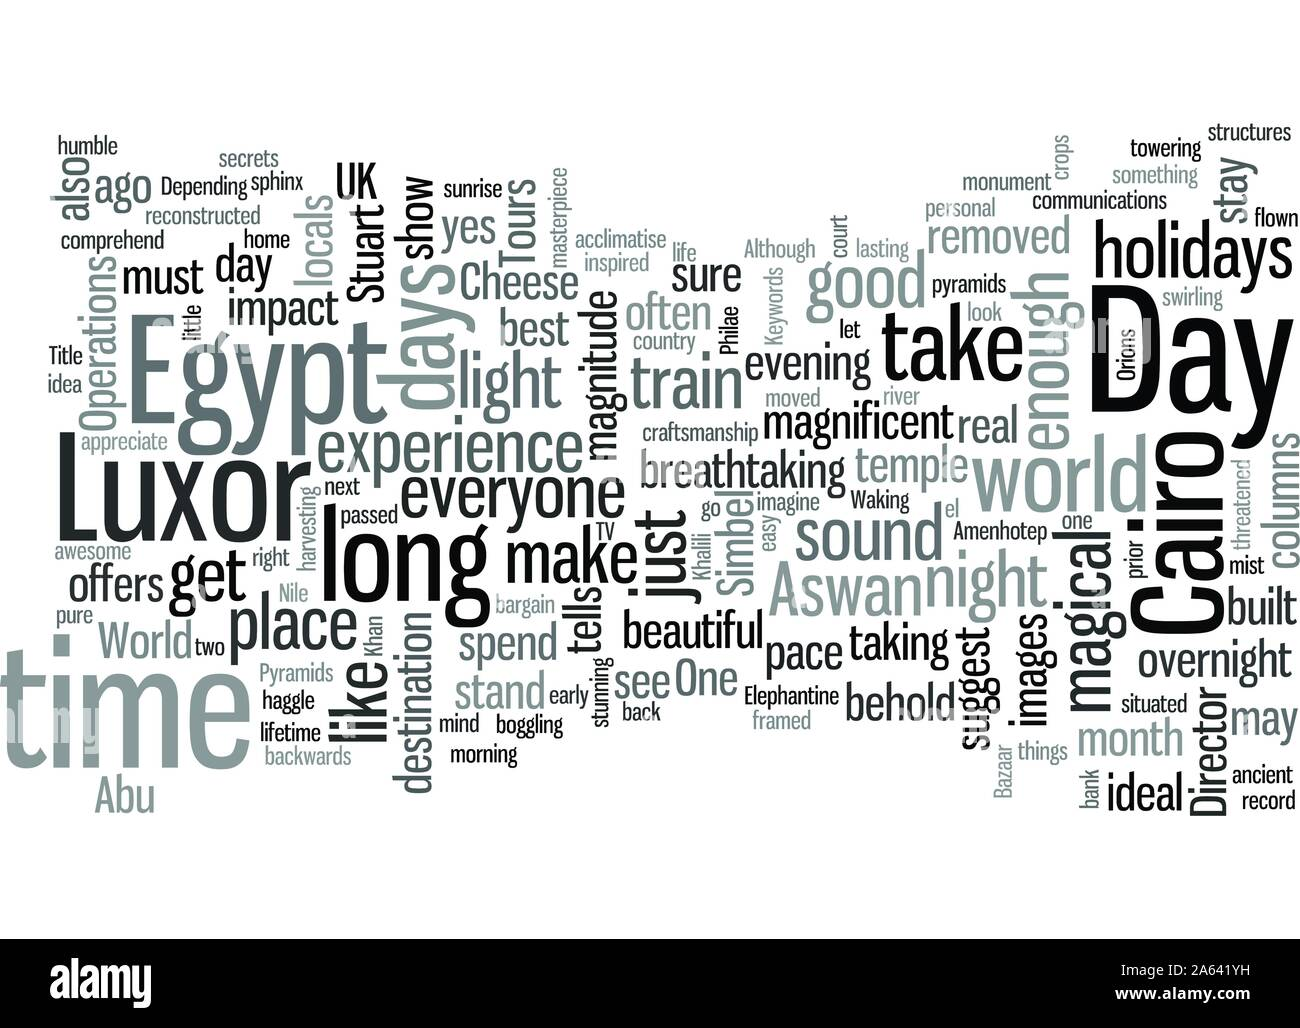 Is a week long enough for a holiday in Egypt Stock Vector